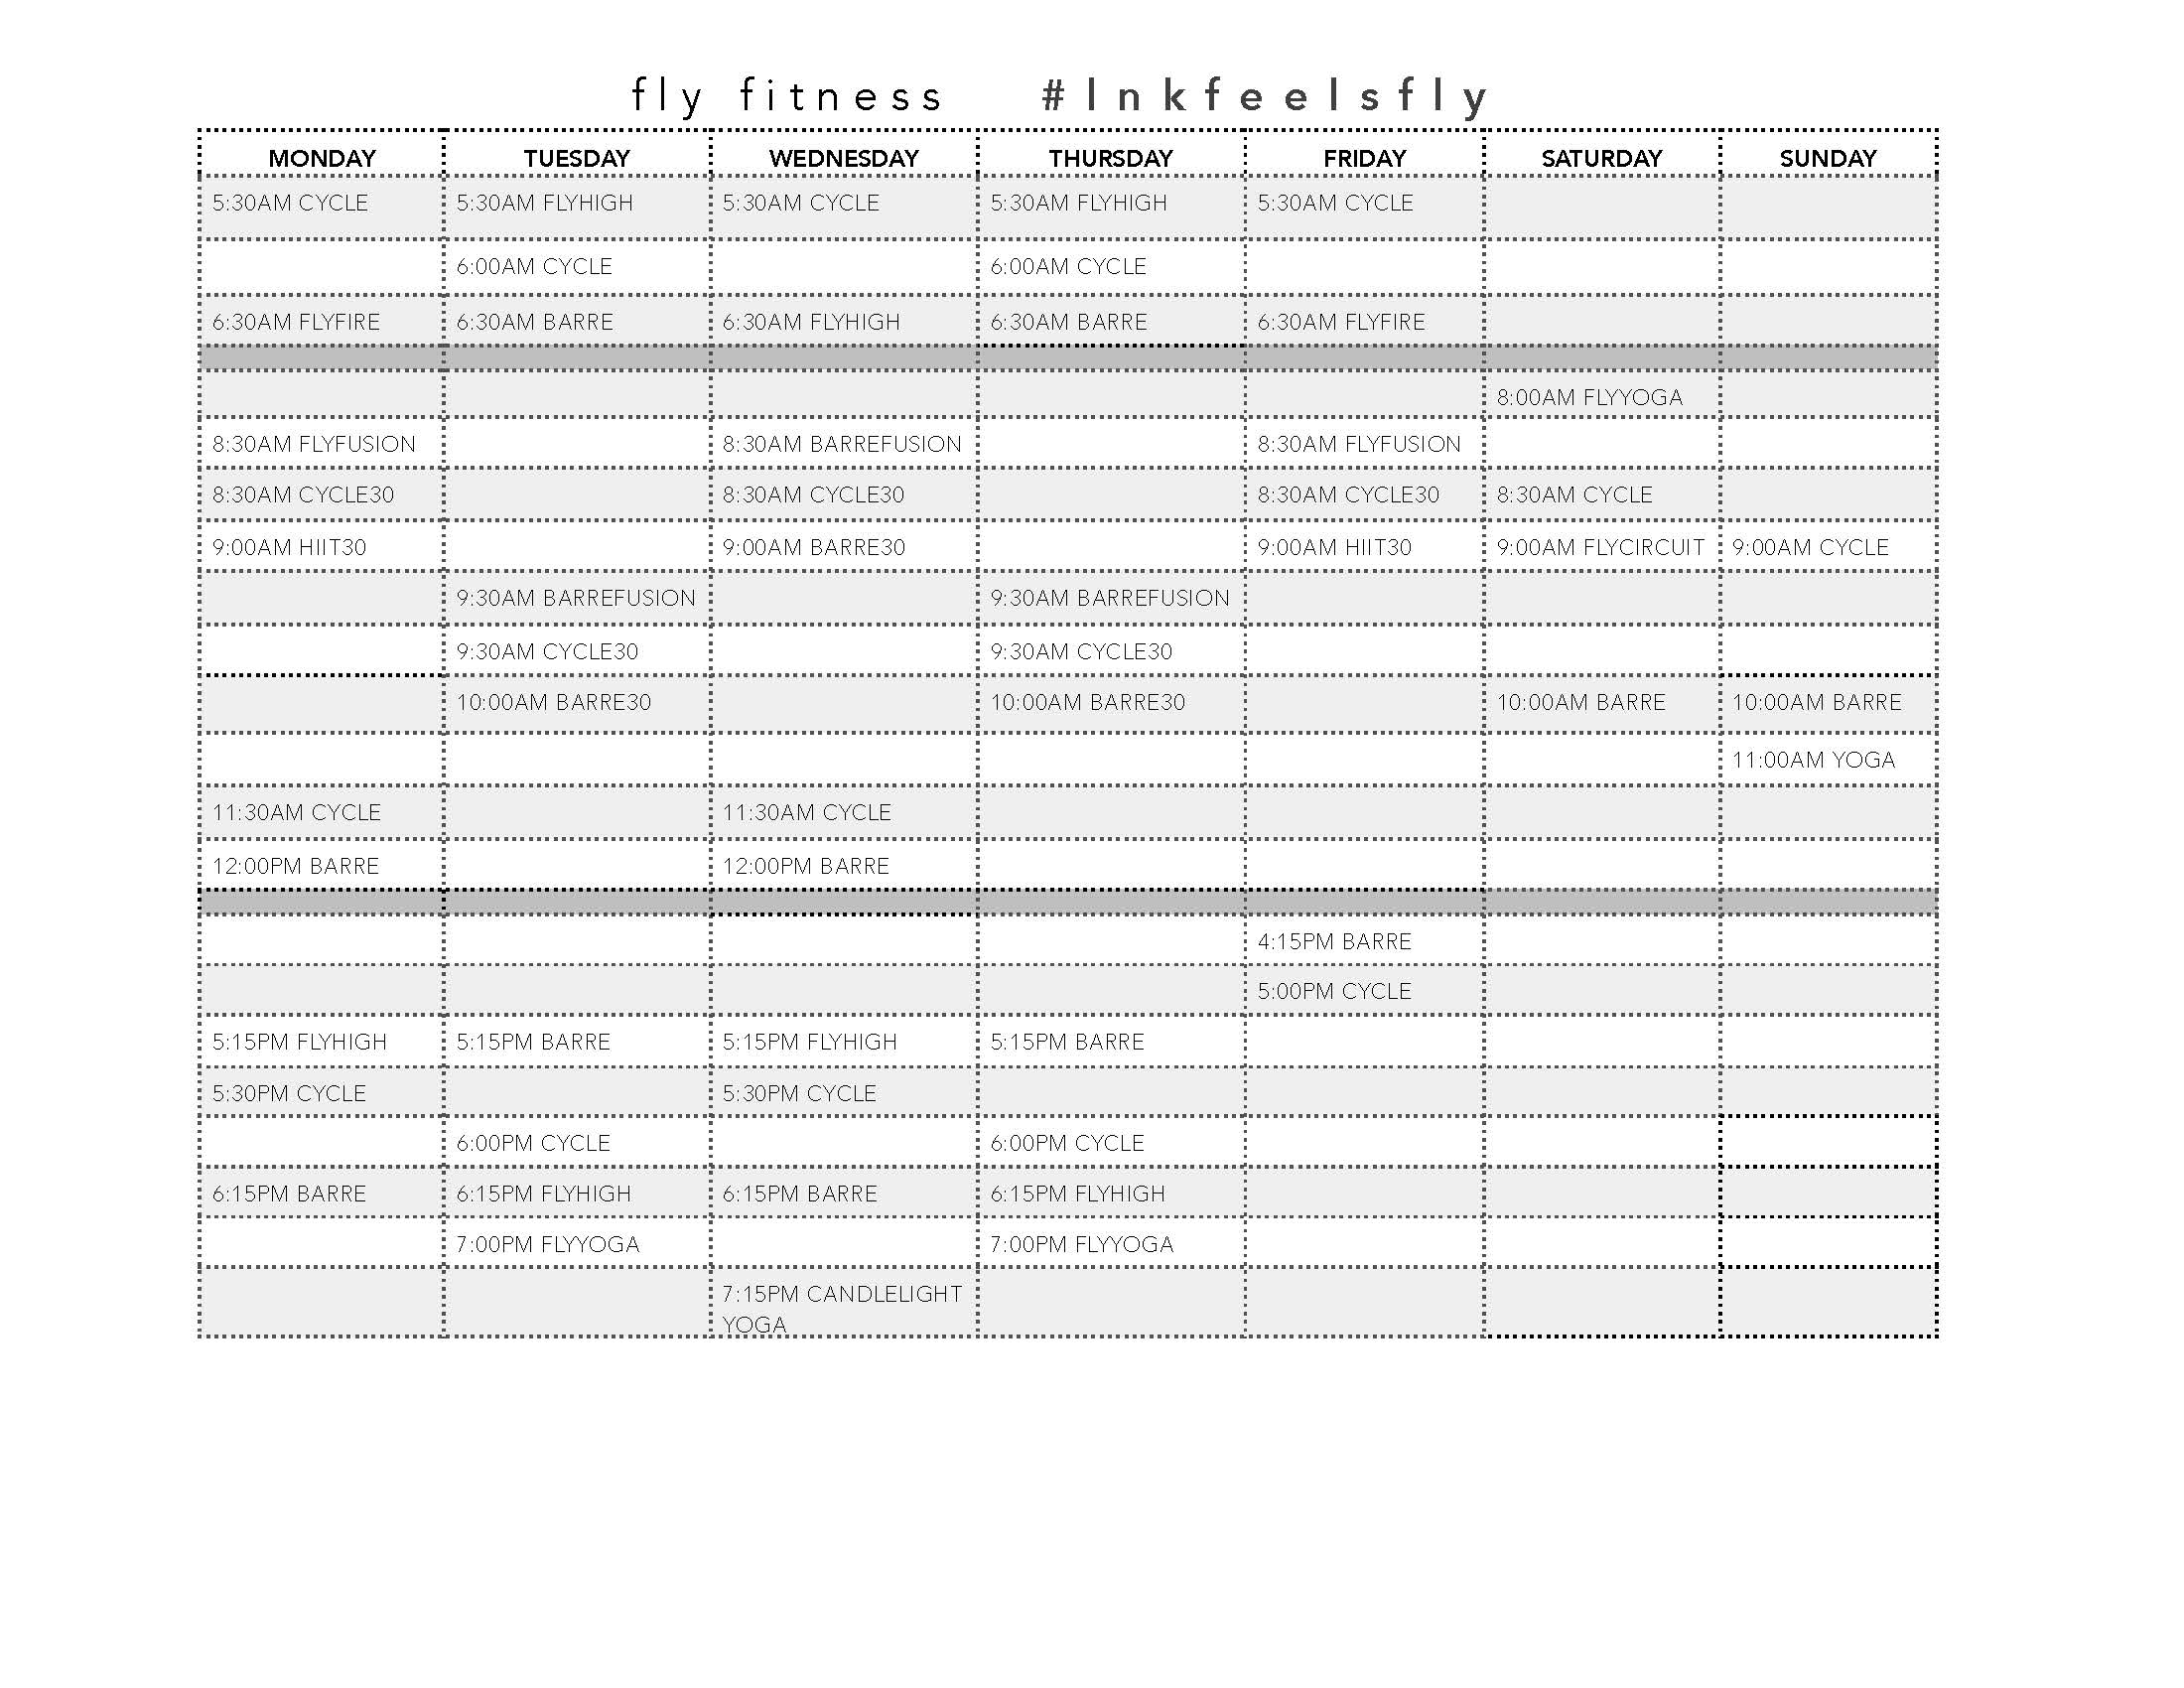 Fly class schedule south lincoln ne